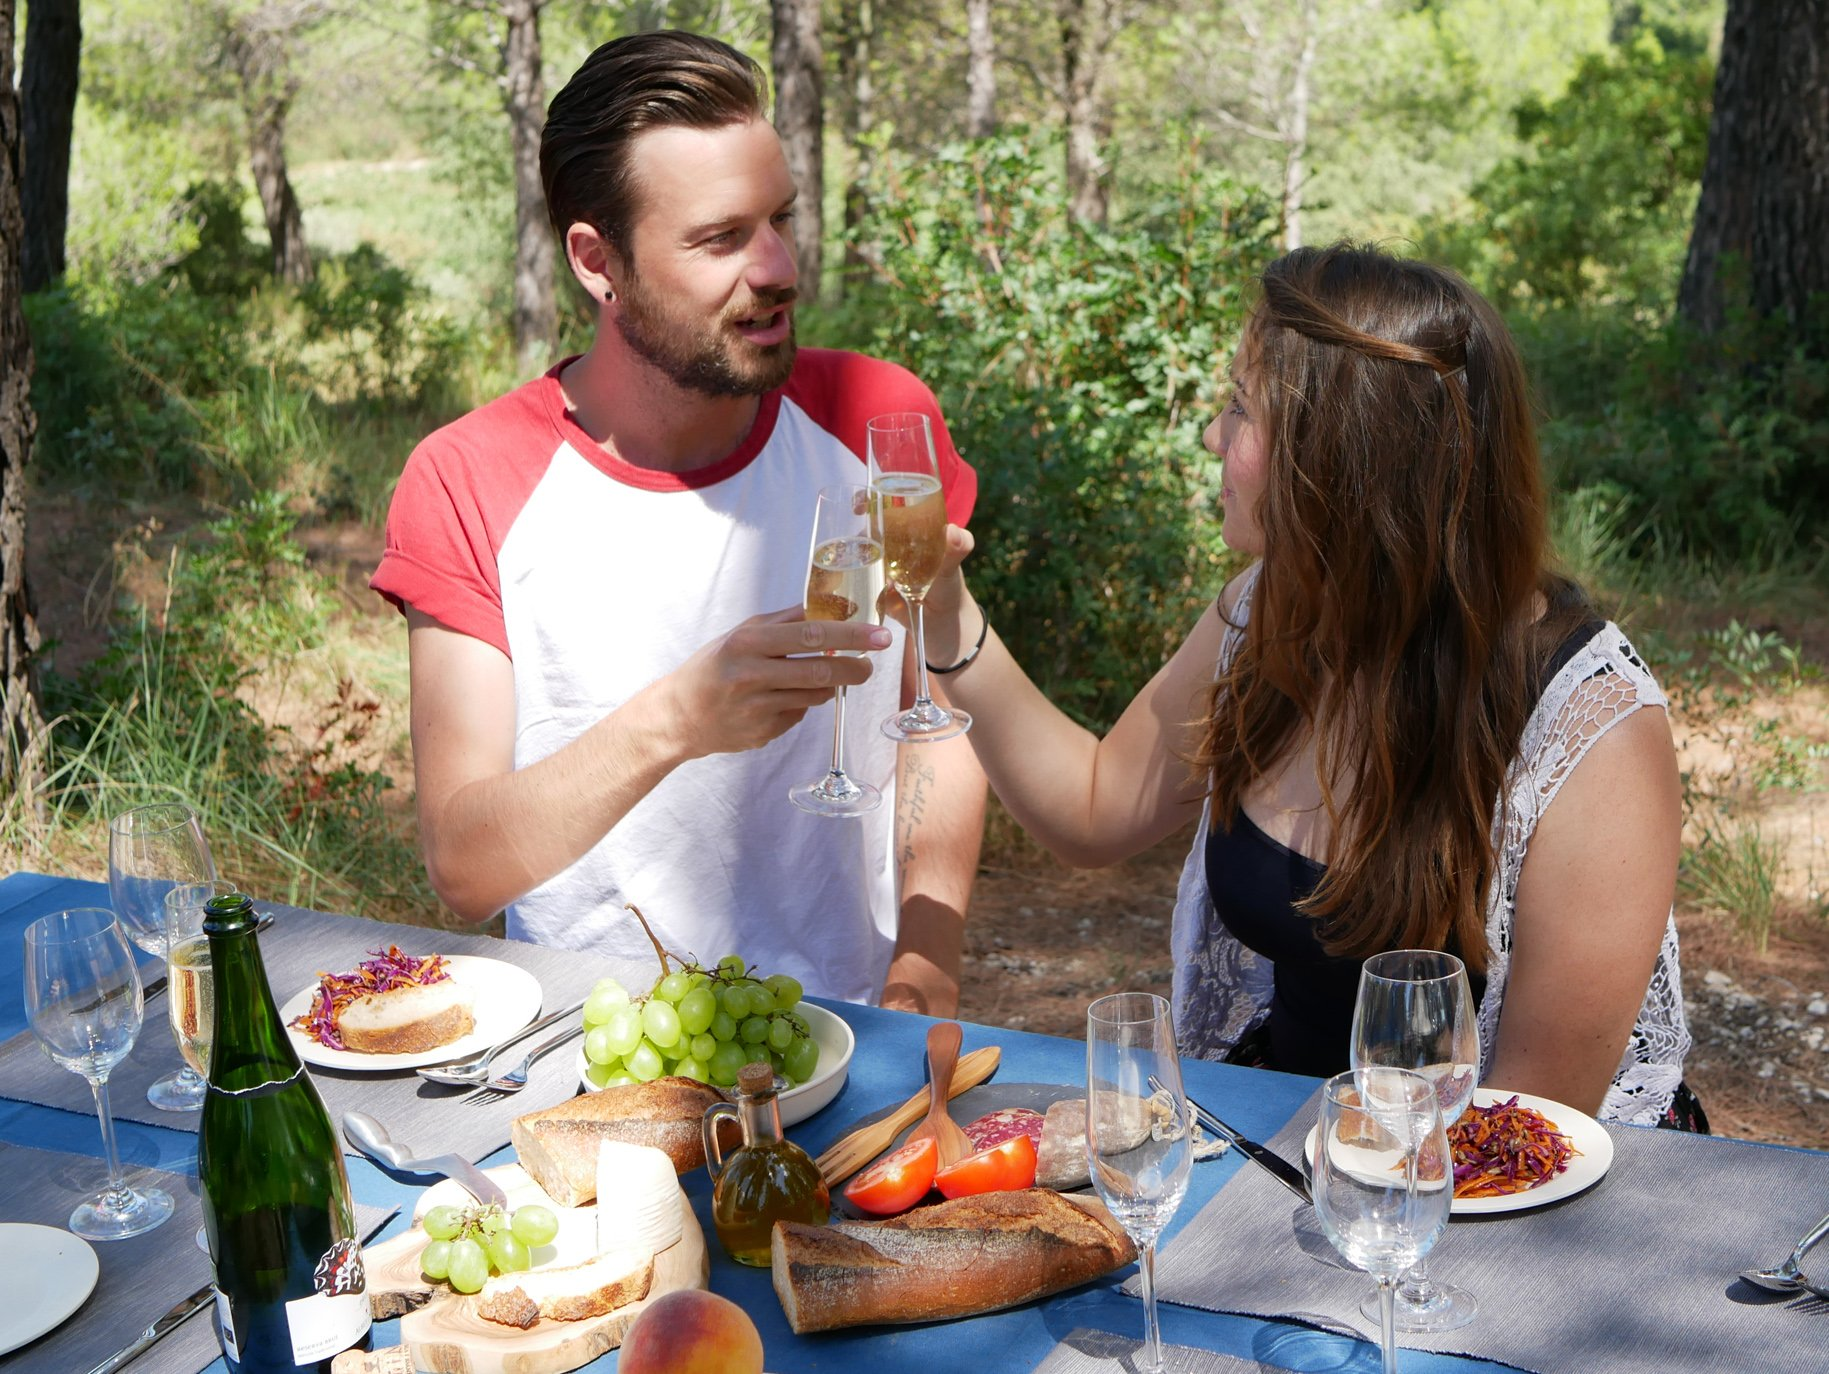 Gourmet picnic, local wines, Barcelona, Spain